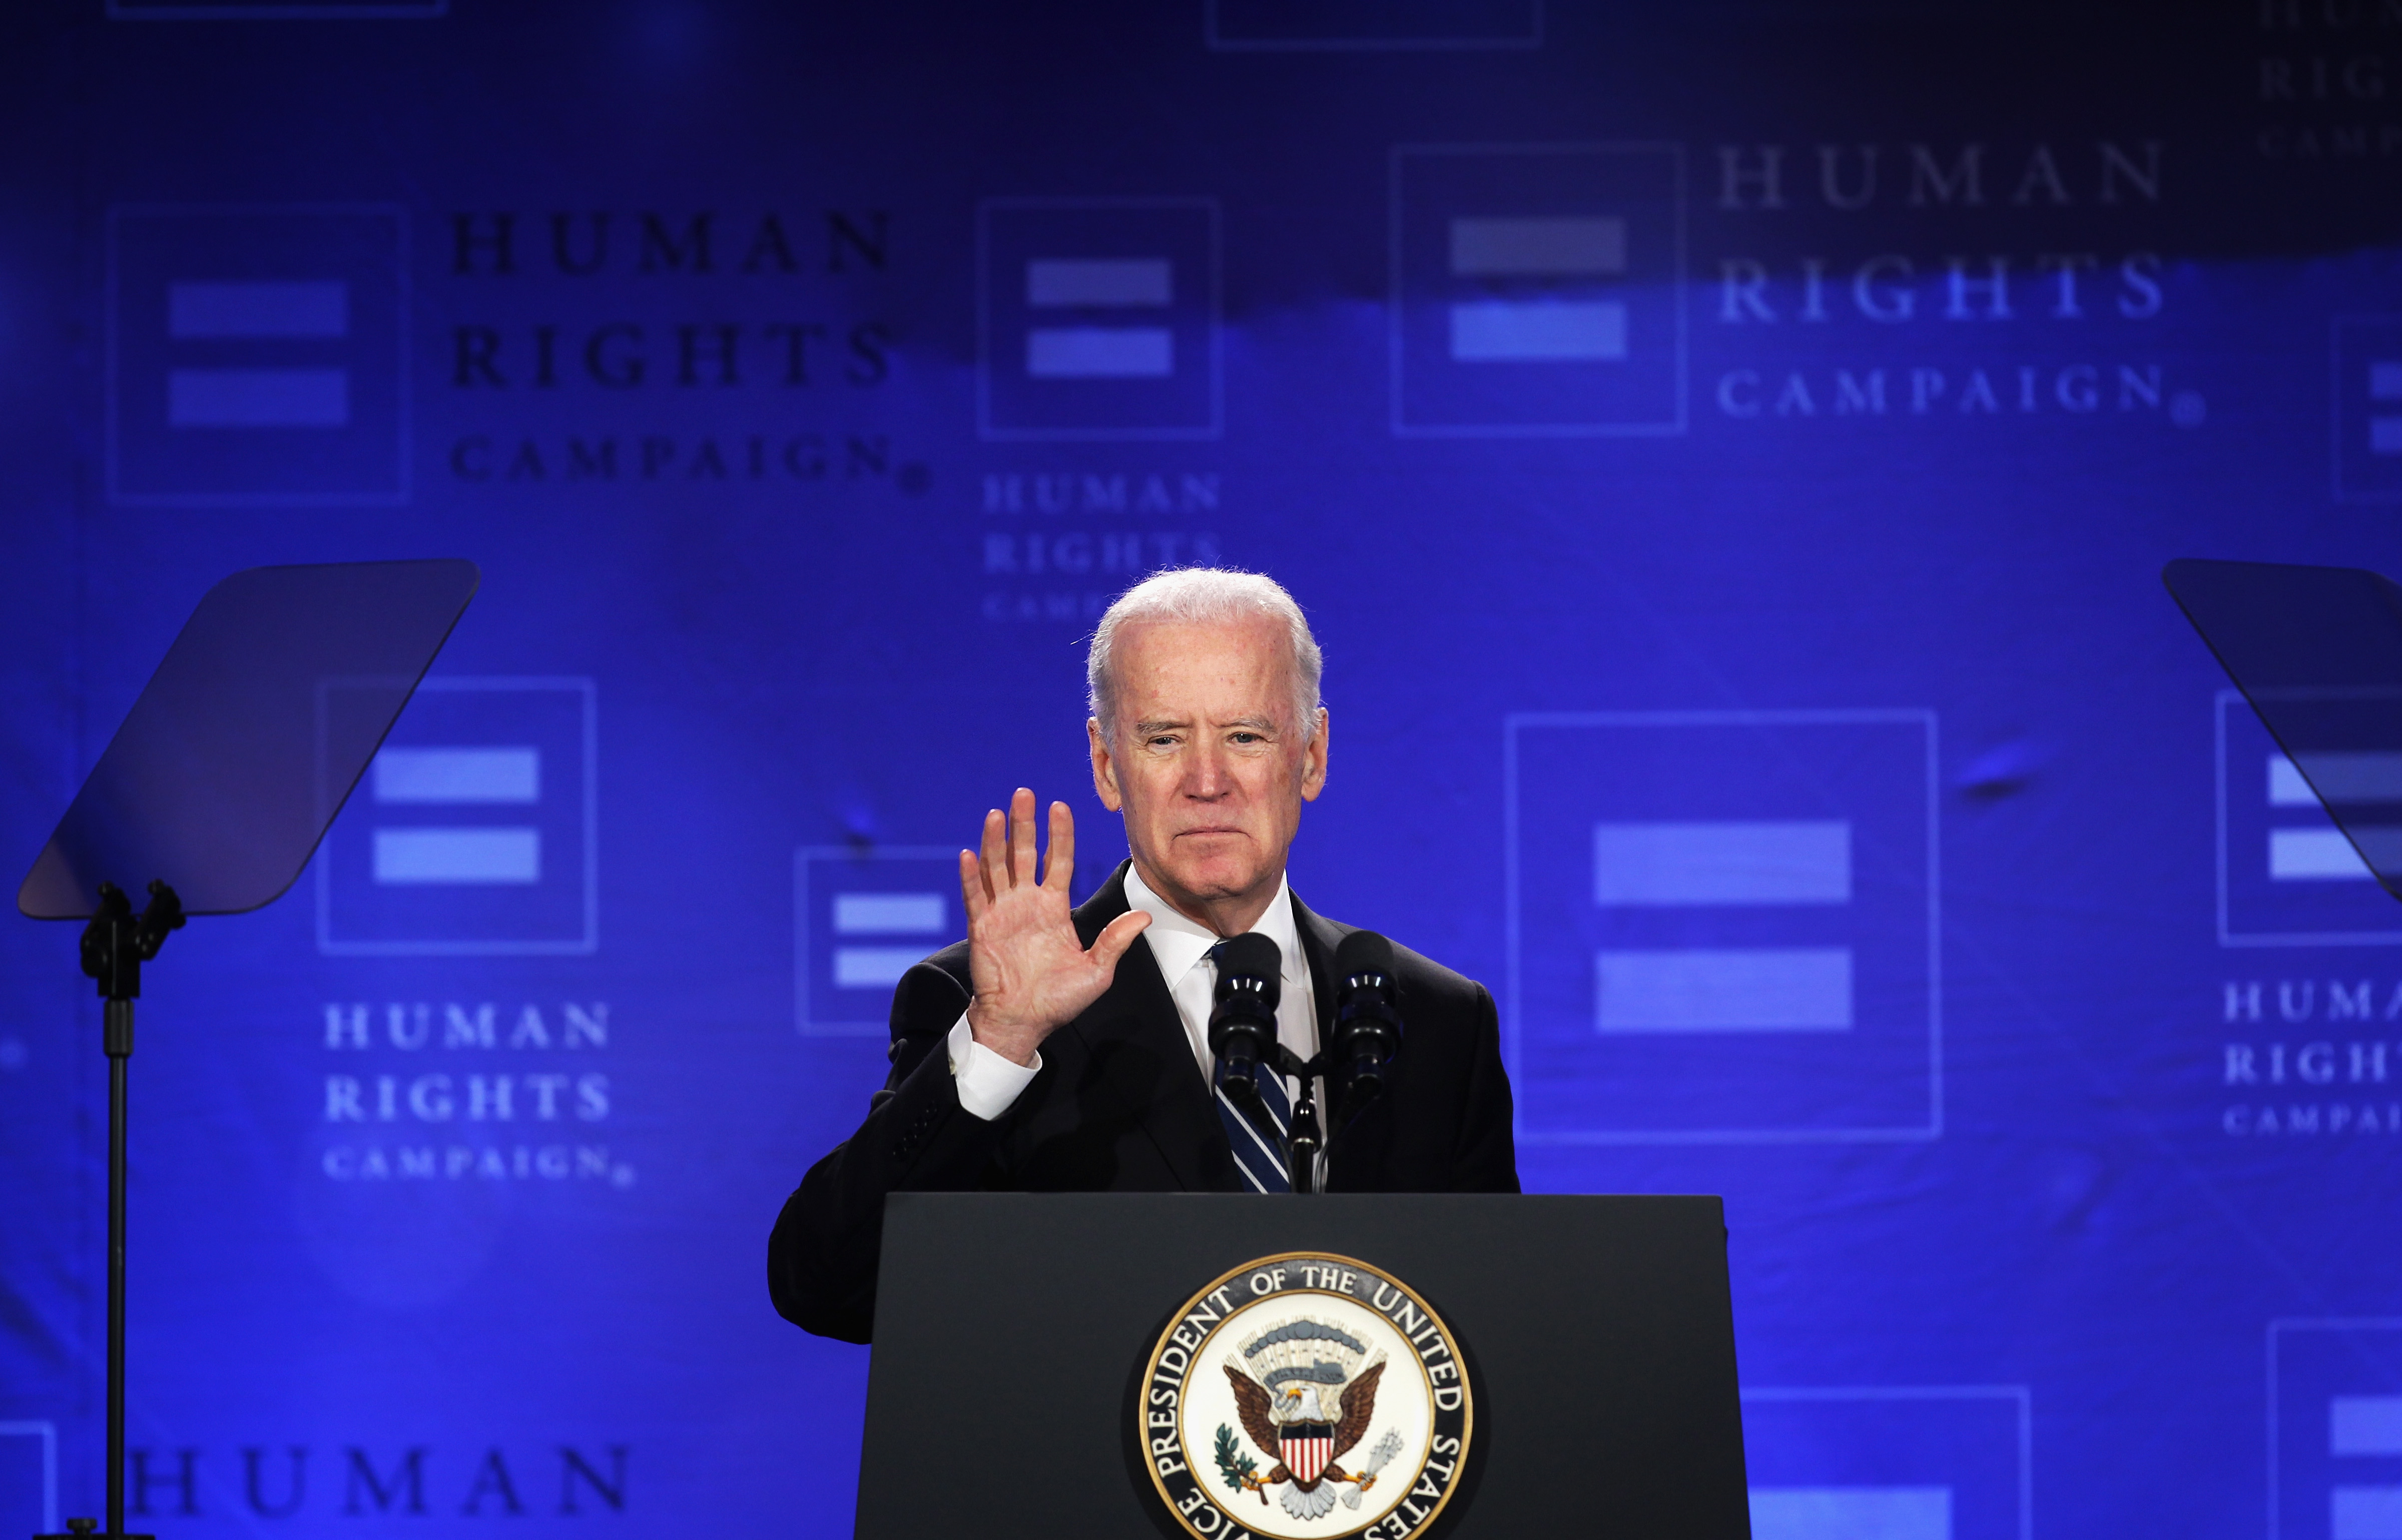 US Vice President Joseph Biden addresses the Spring Equality Convention of Human Rights Campaign (HRC) March 6, 2015 in Washington, DC.